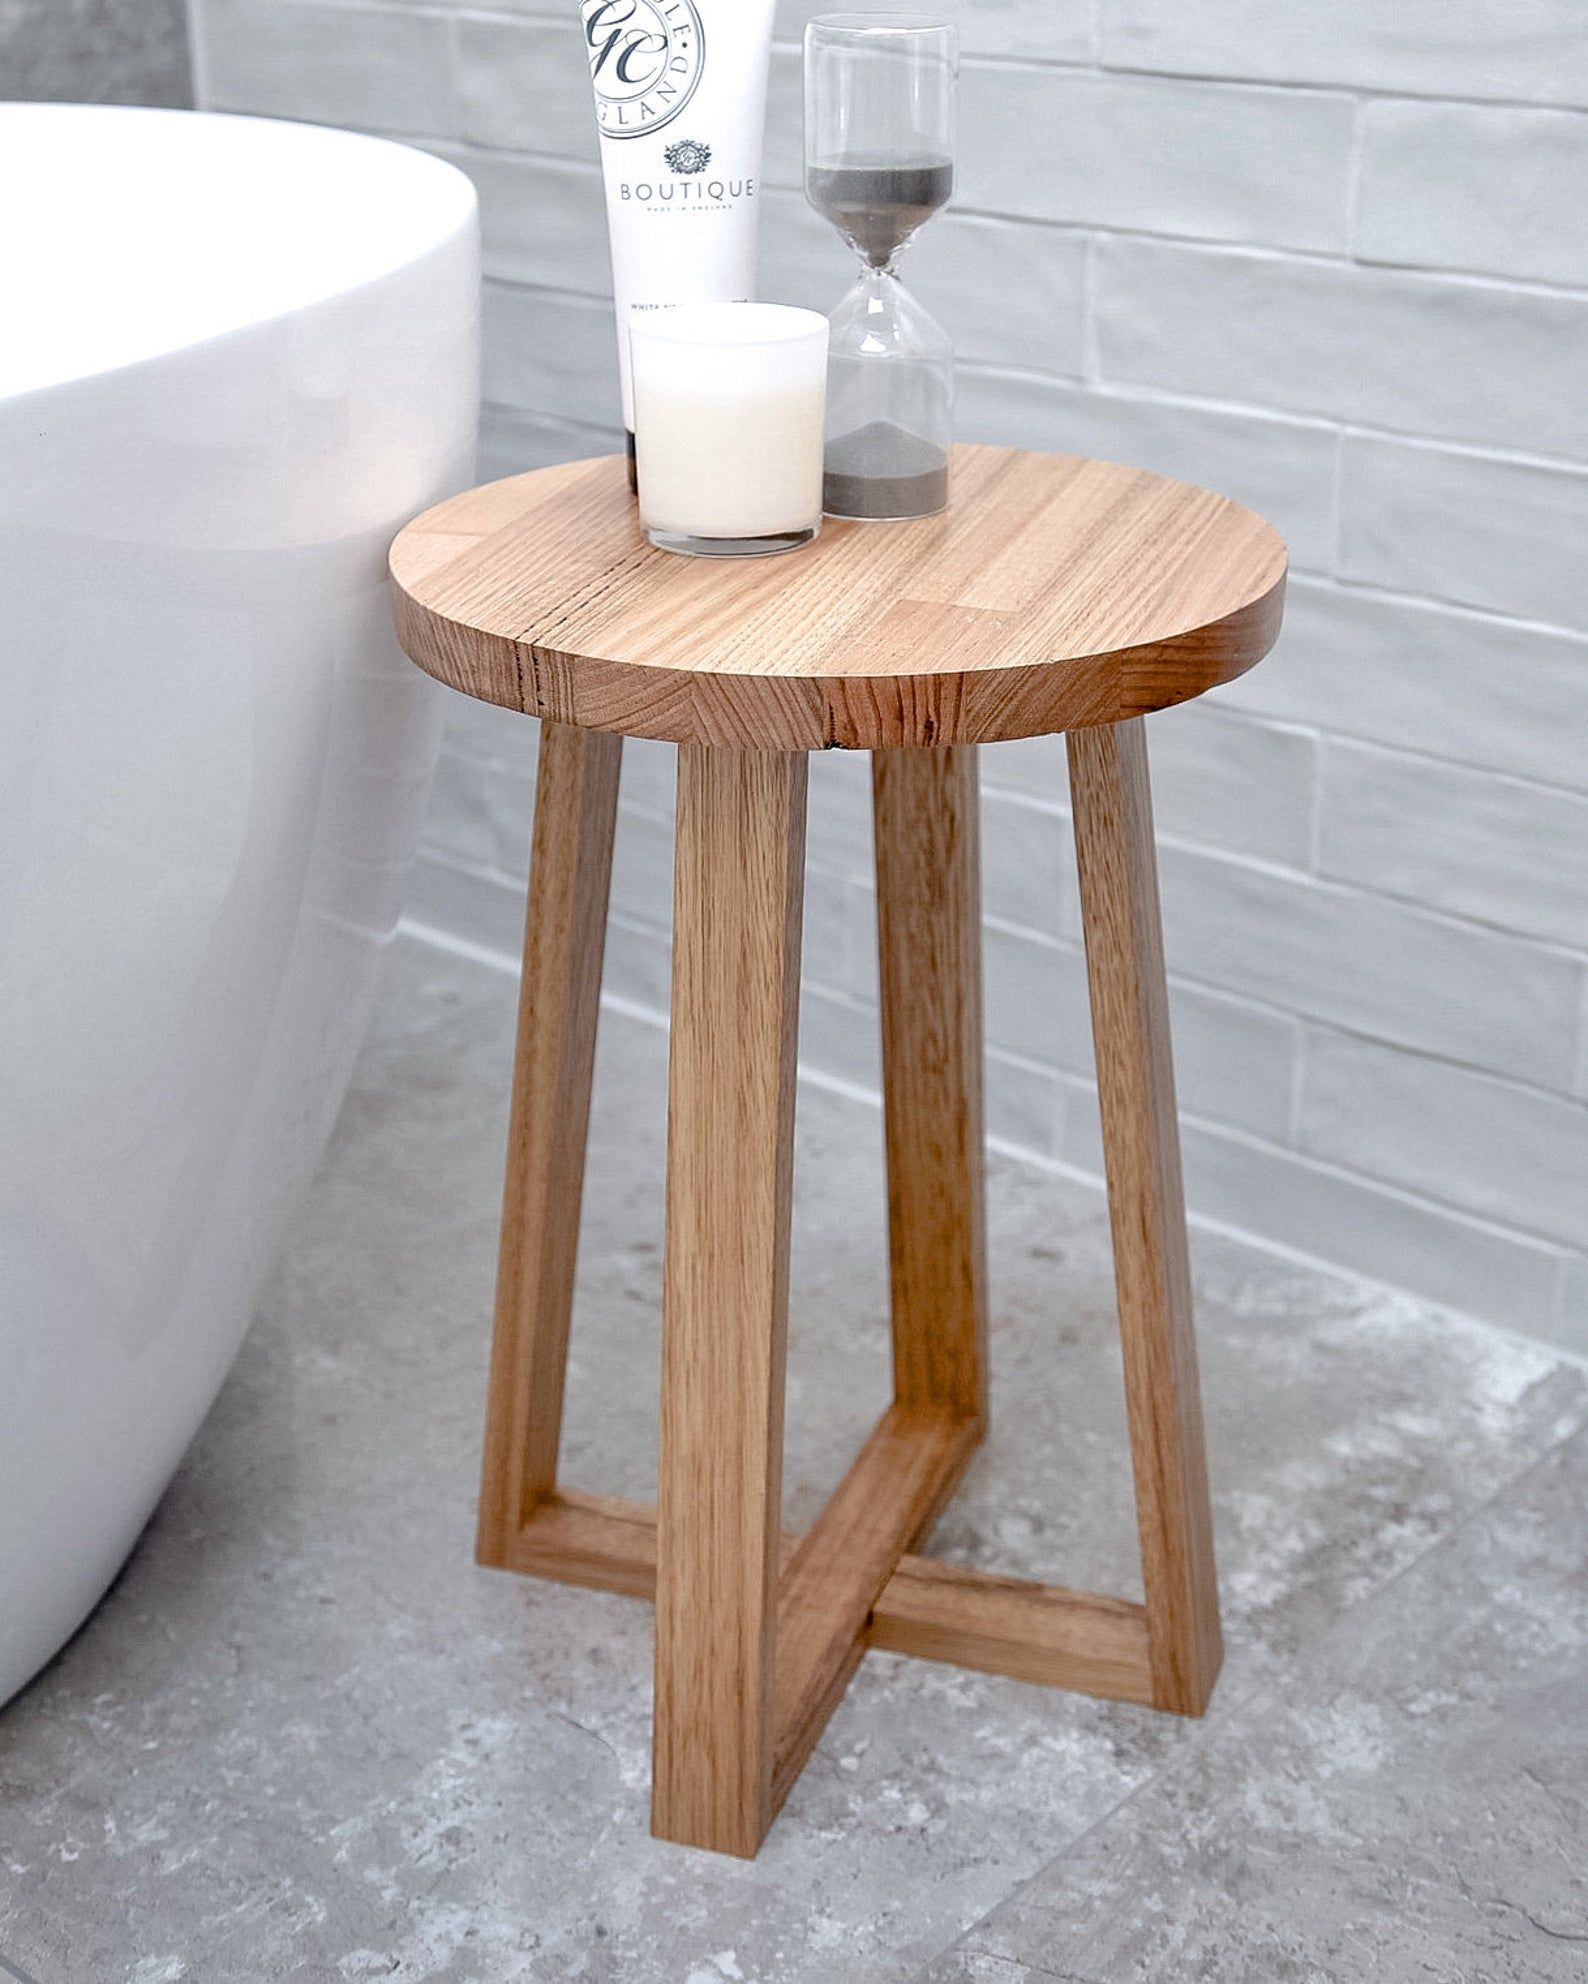 Round Side Table Wooden Stool Bedside Table Round Side Table Wooden Stools Wooden Bedside Table [ 1984 x 1588 Pixel ]